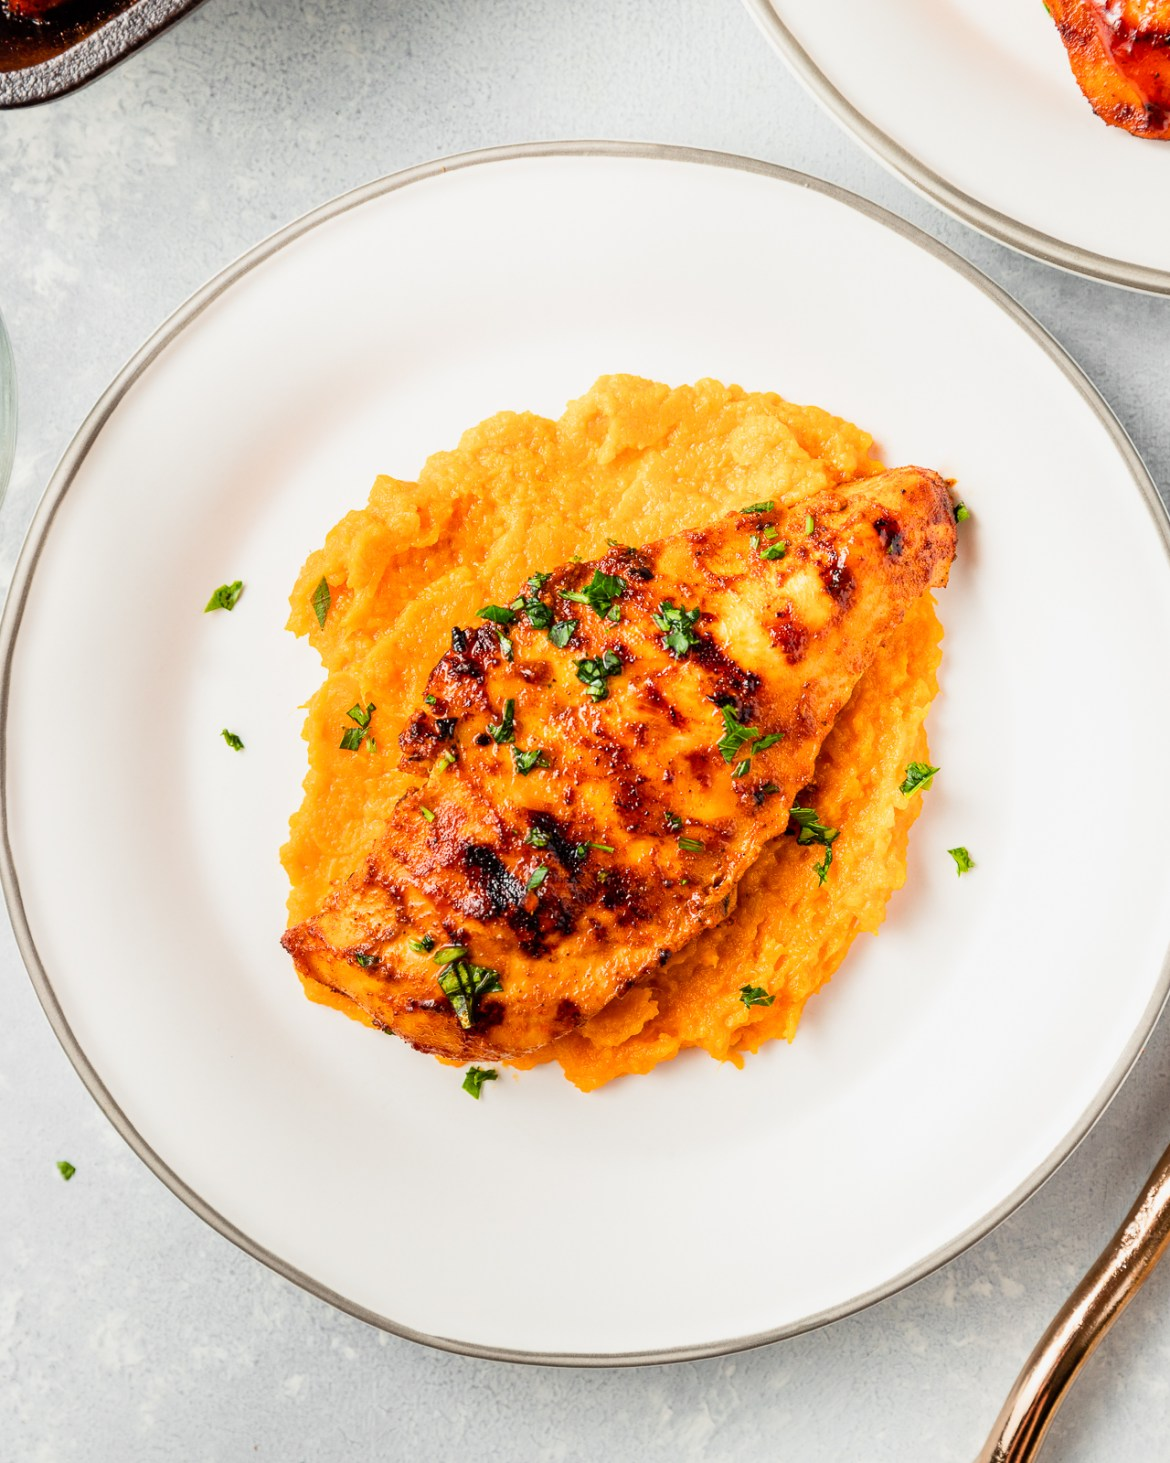 bbq chicken served with mashed sweet potatoes